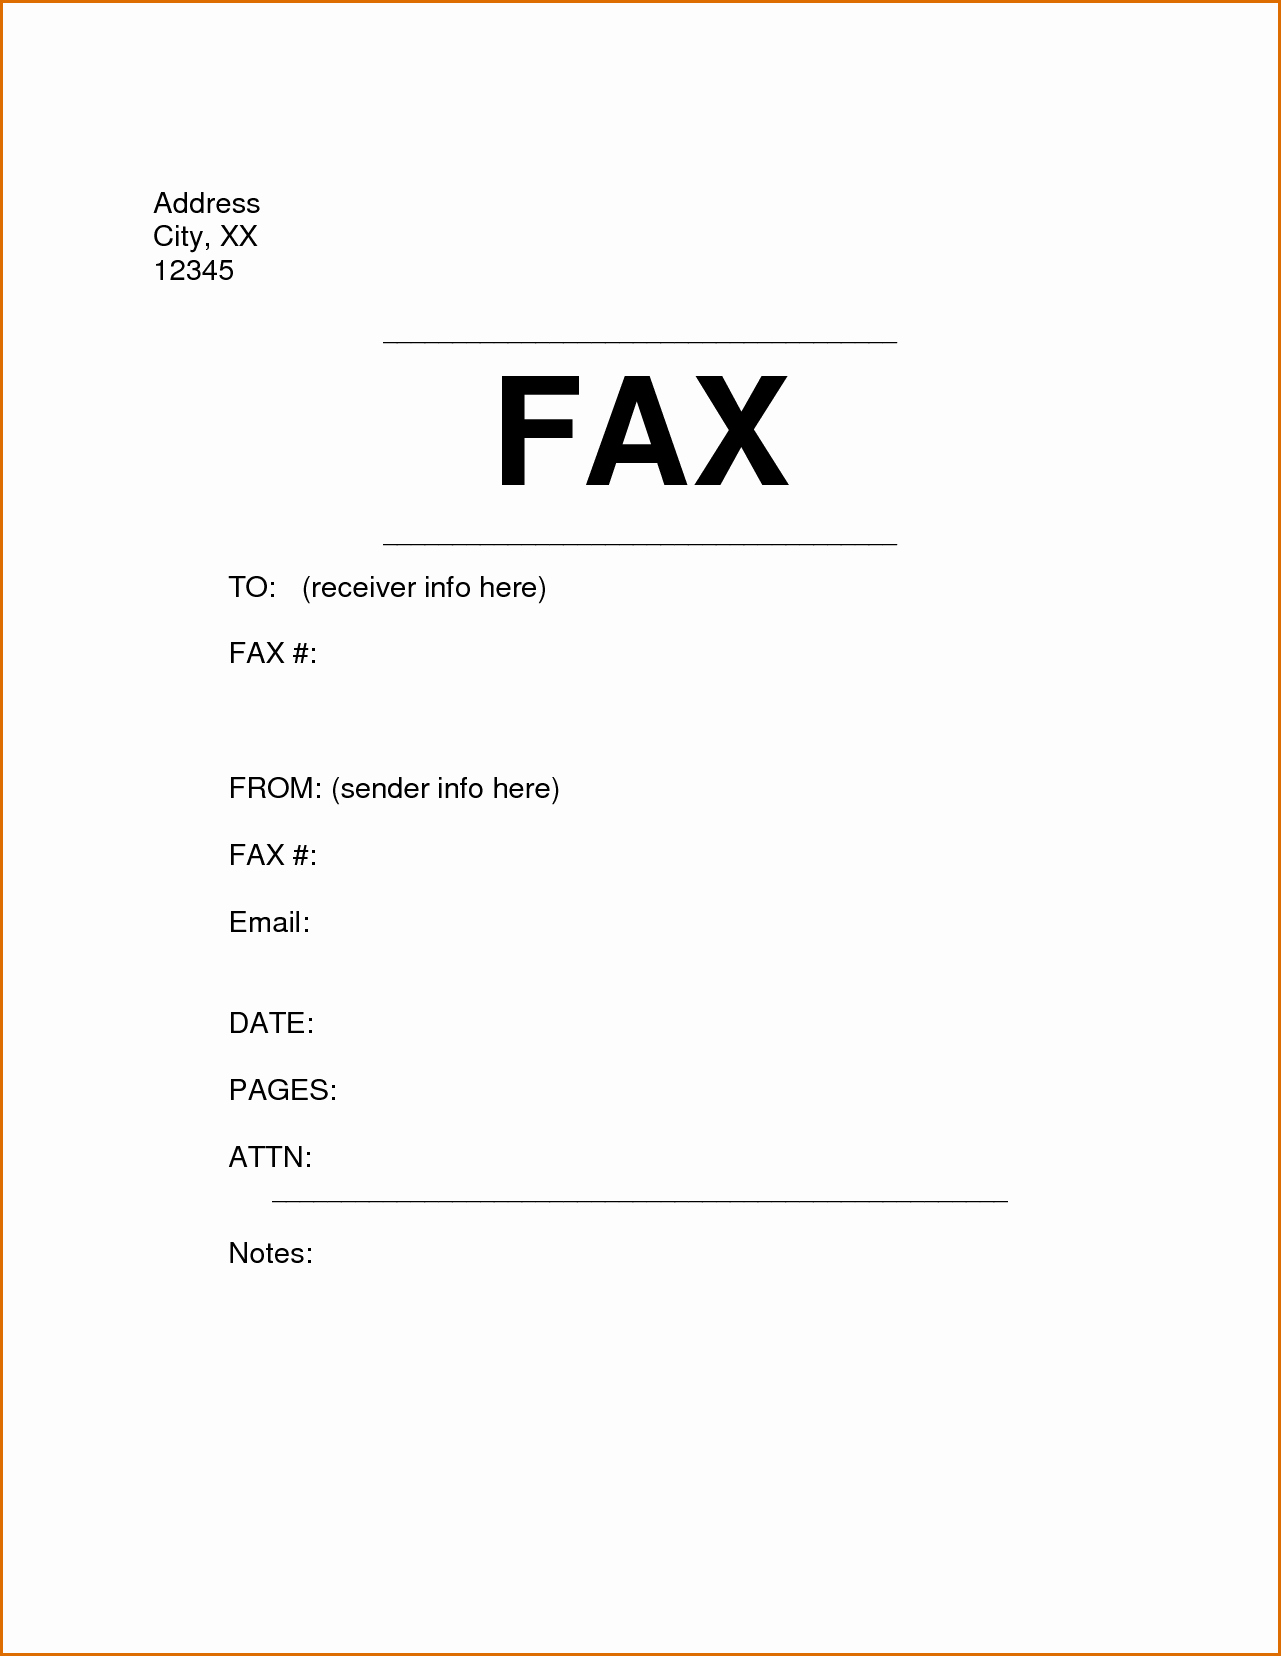 Cover Page for A Fax Best Of 6 Fax Cover Sheet format